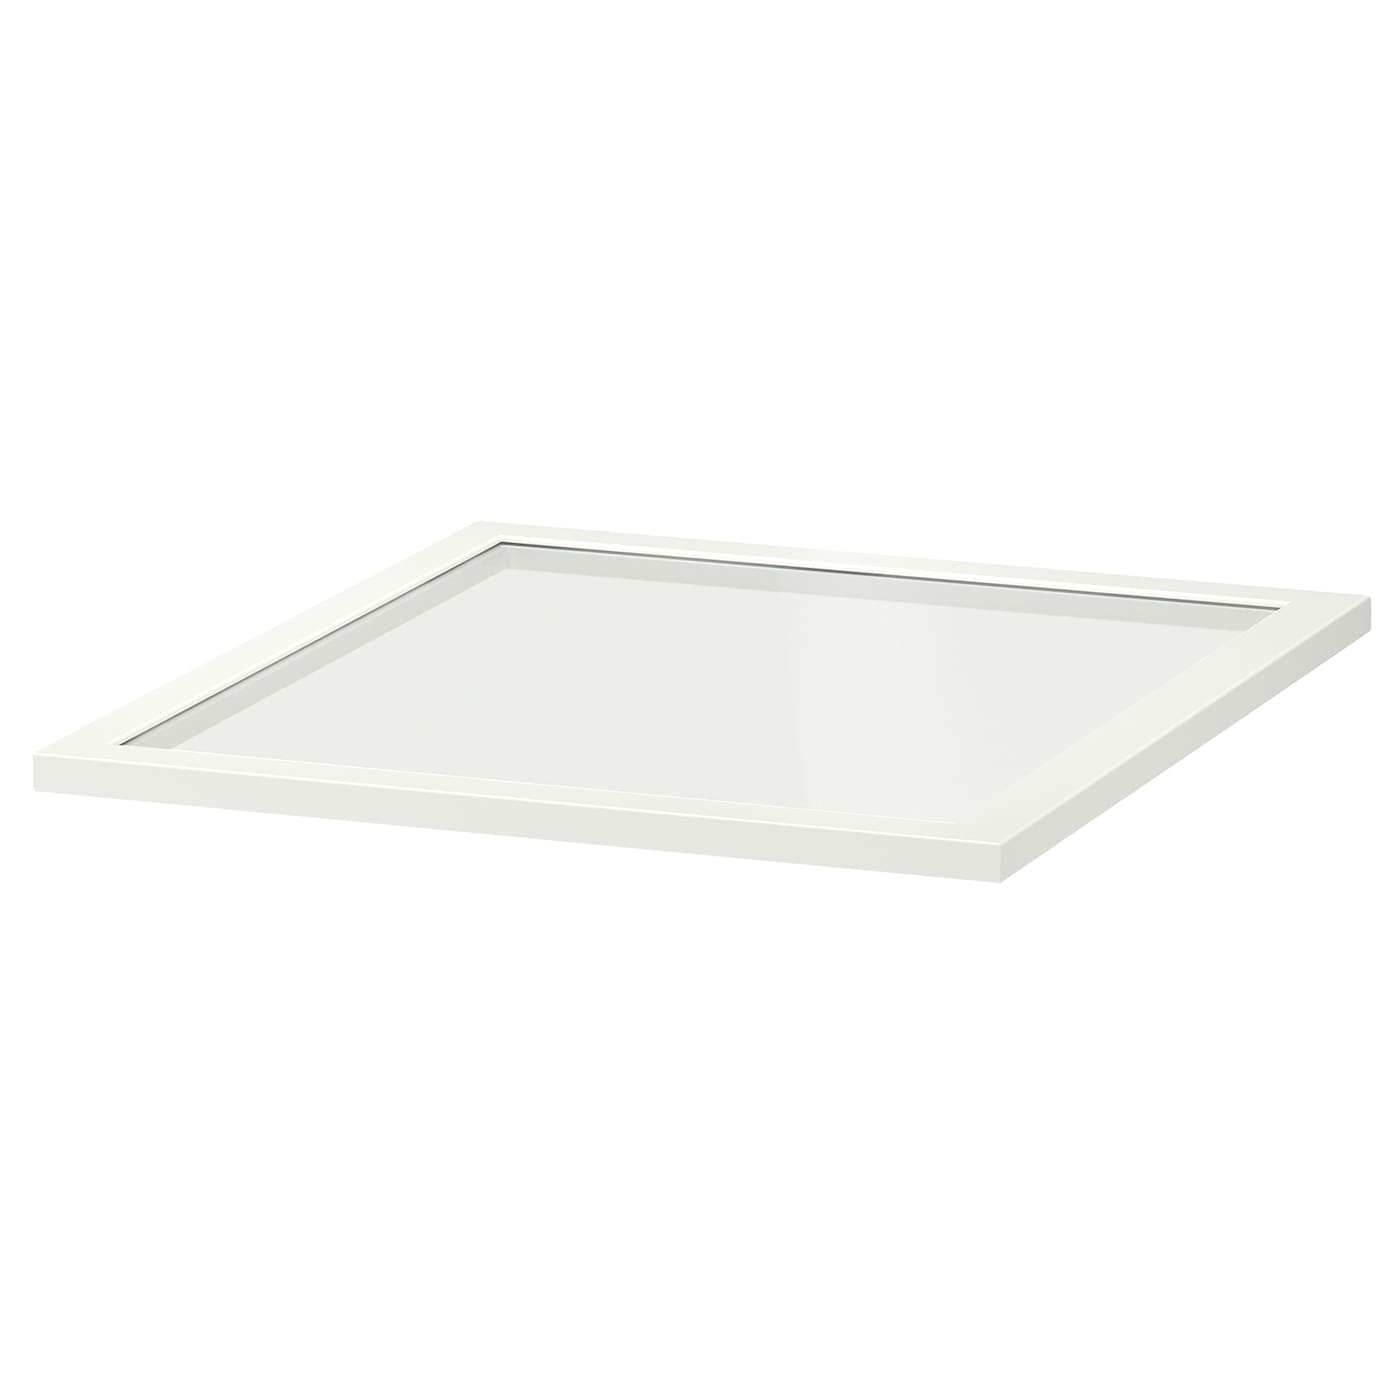 IKEA KOMPLEMENT glass shelf 10 year guarantee. Read about the terms in the guarantee brochure.